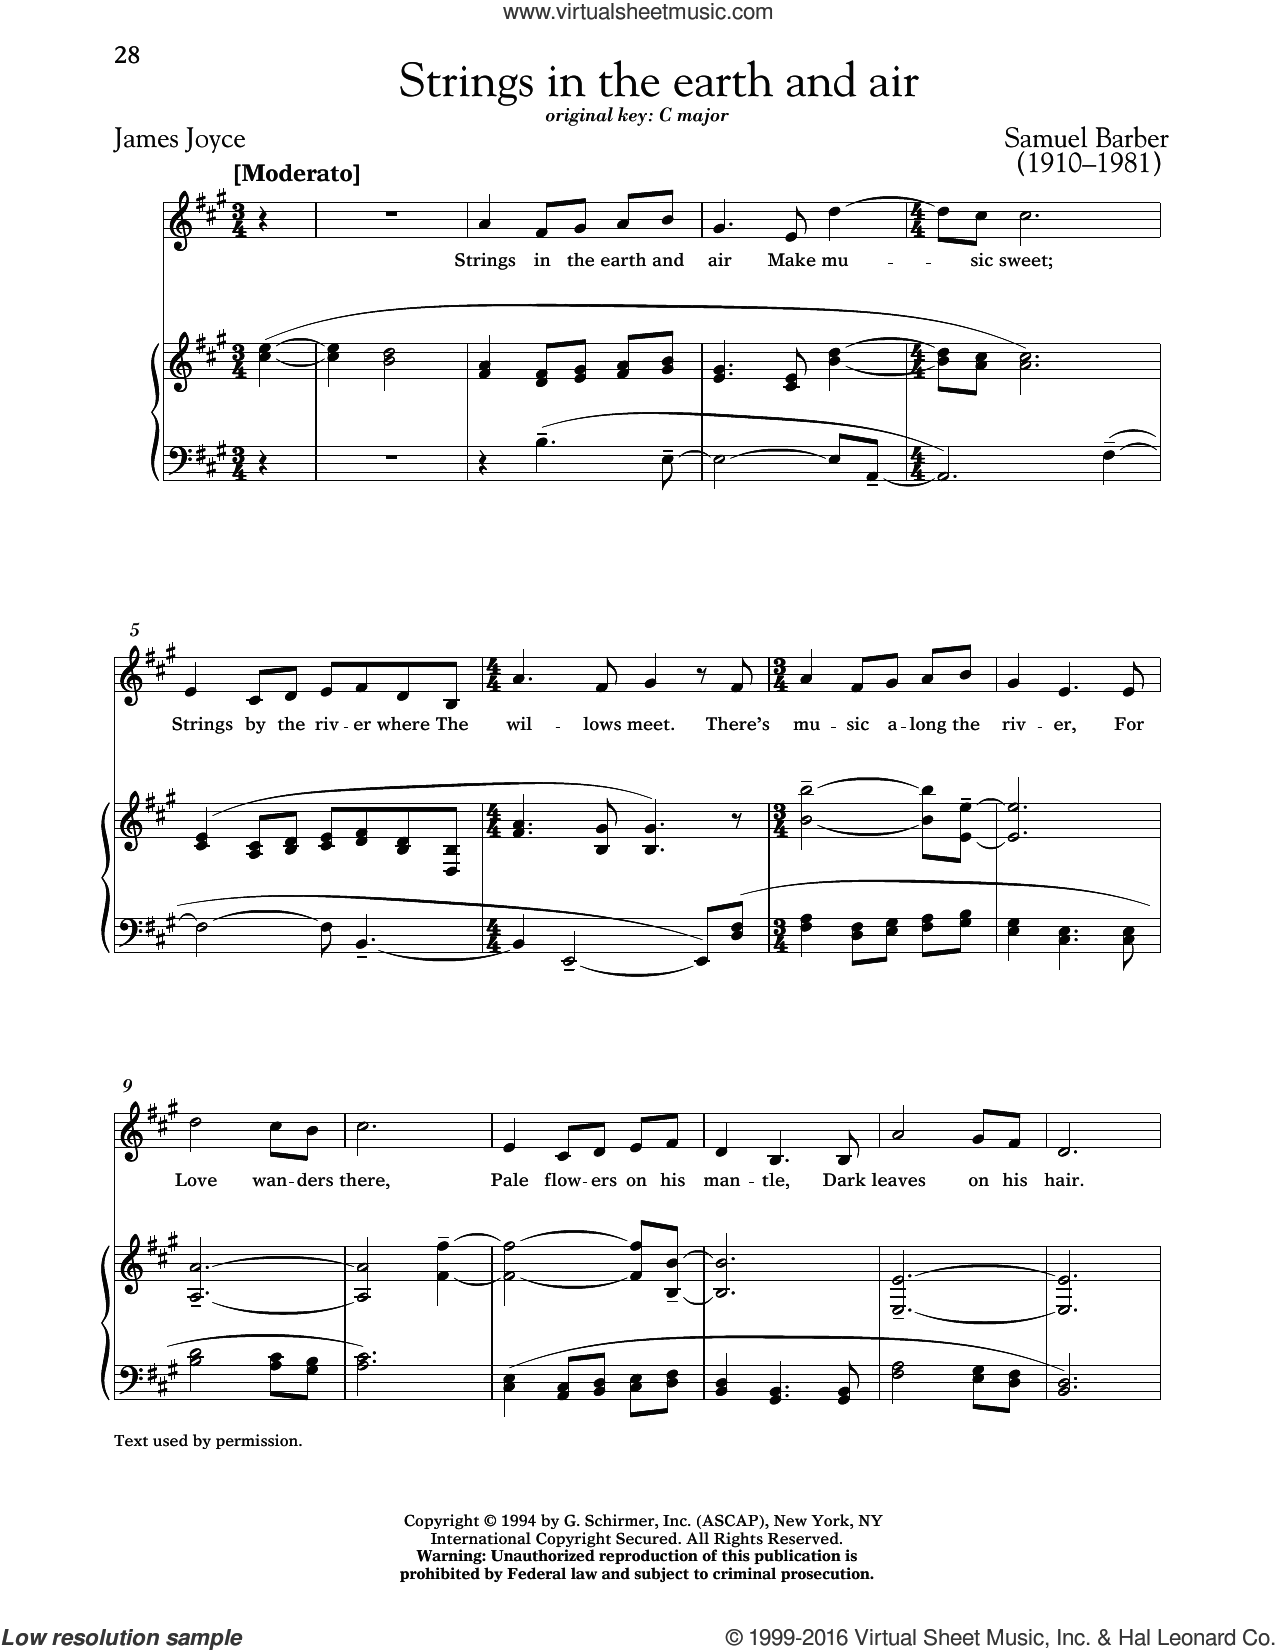 Strings In The Earth And Air sheet music for voice and piano (High ) by James Joyce, Richard Walters and Samuel Barber. Score Image Preview.